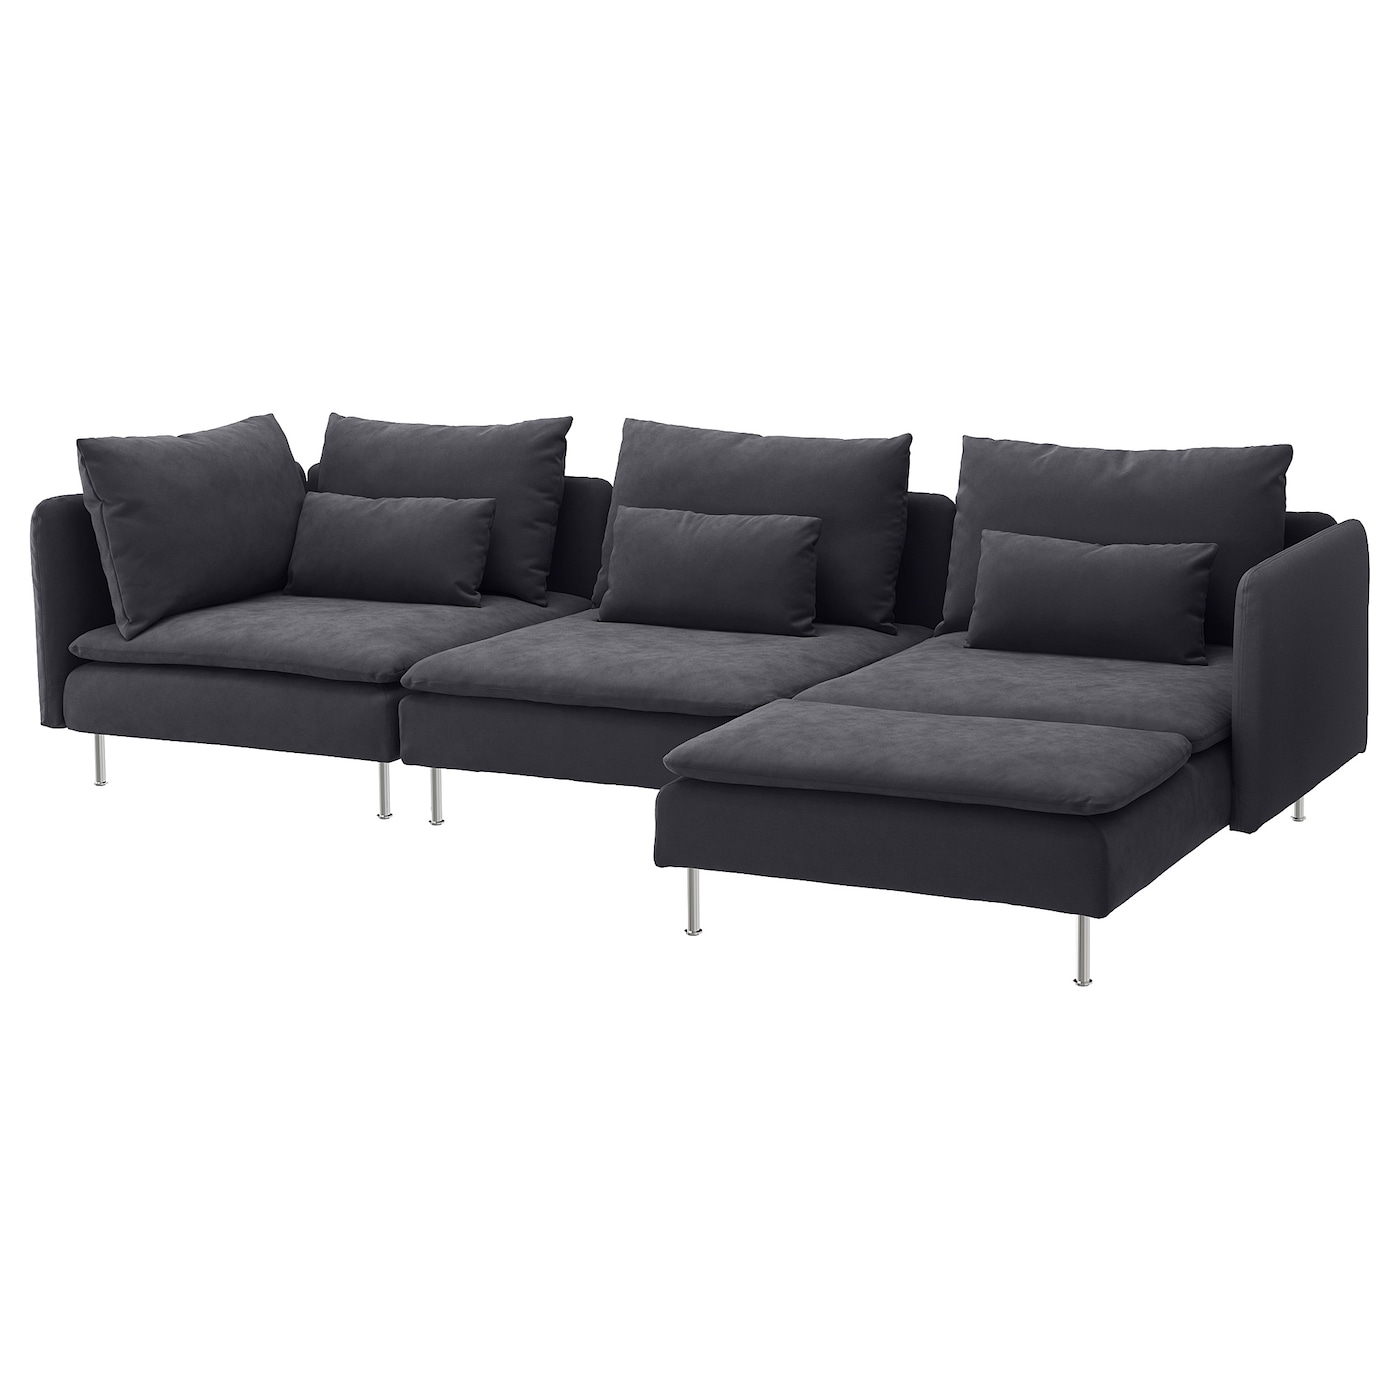 Söderhamn 4 Seat Sofa, With Chaise Longue/Samsta Dark Grey Throughout Sofa With Chairs (View 12 of 15)